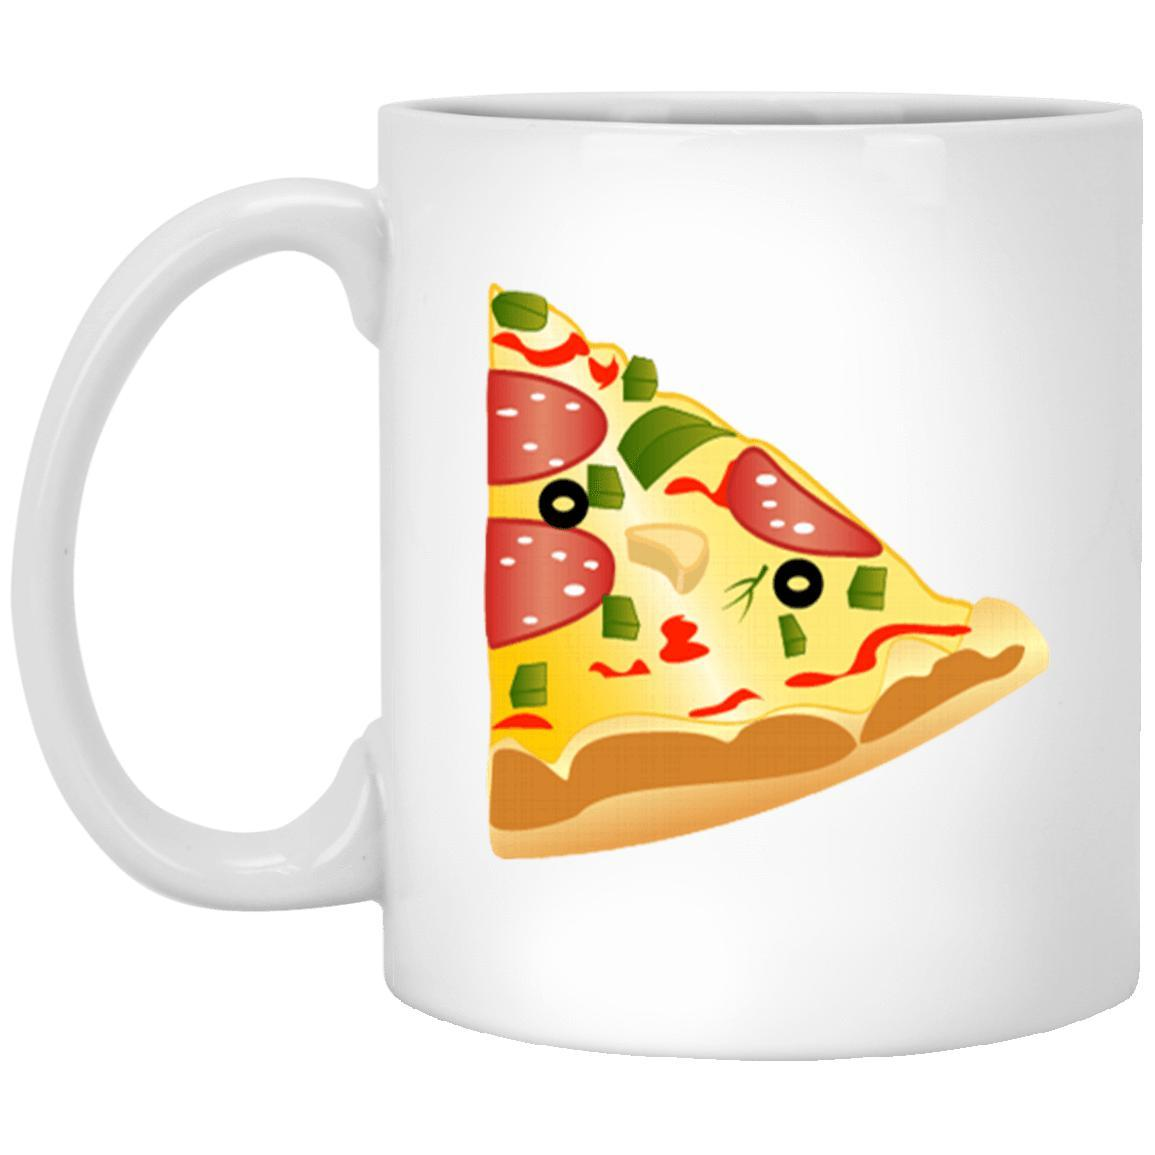 Pizza Slice Mugs